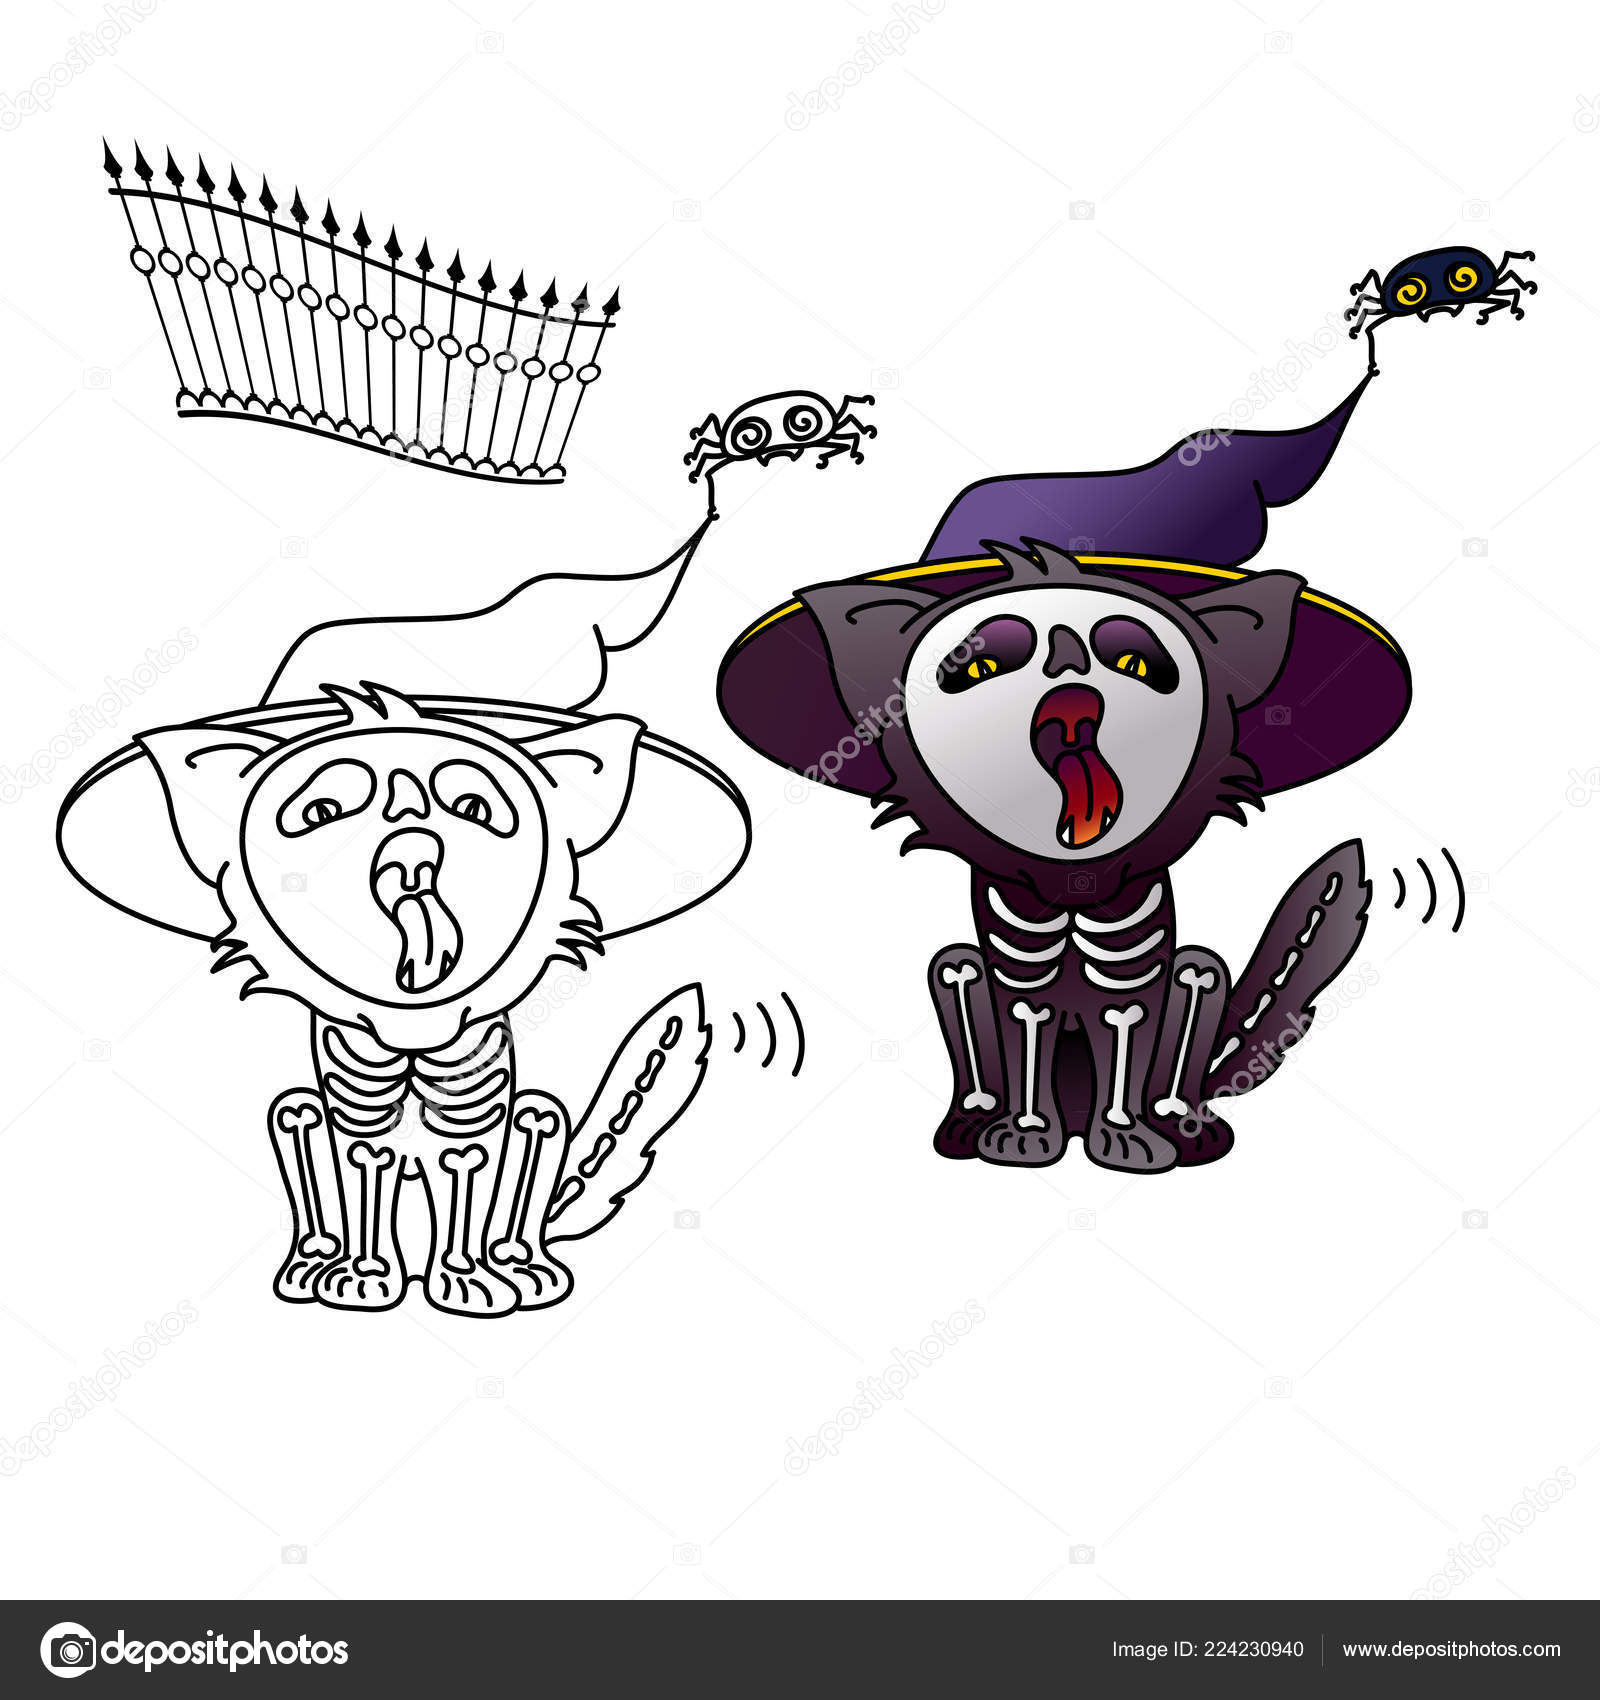 3d4b6aa4 Cartoon Black cat sitting and meowing. Halloween vector illustration of cat  in hat and suit of a skeleton. Two cute cats set for Halloween design.